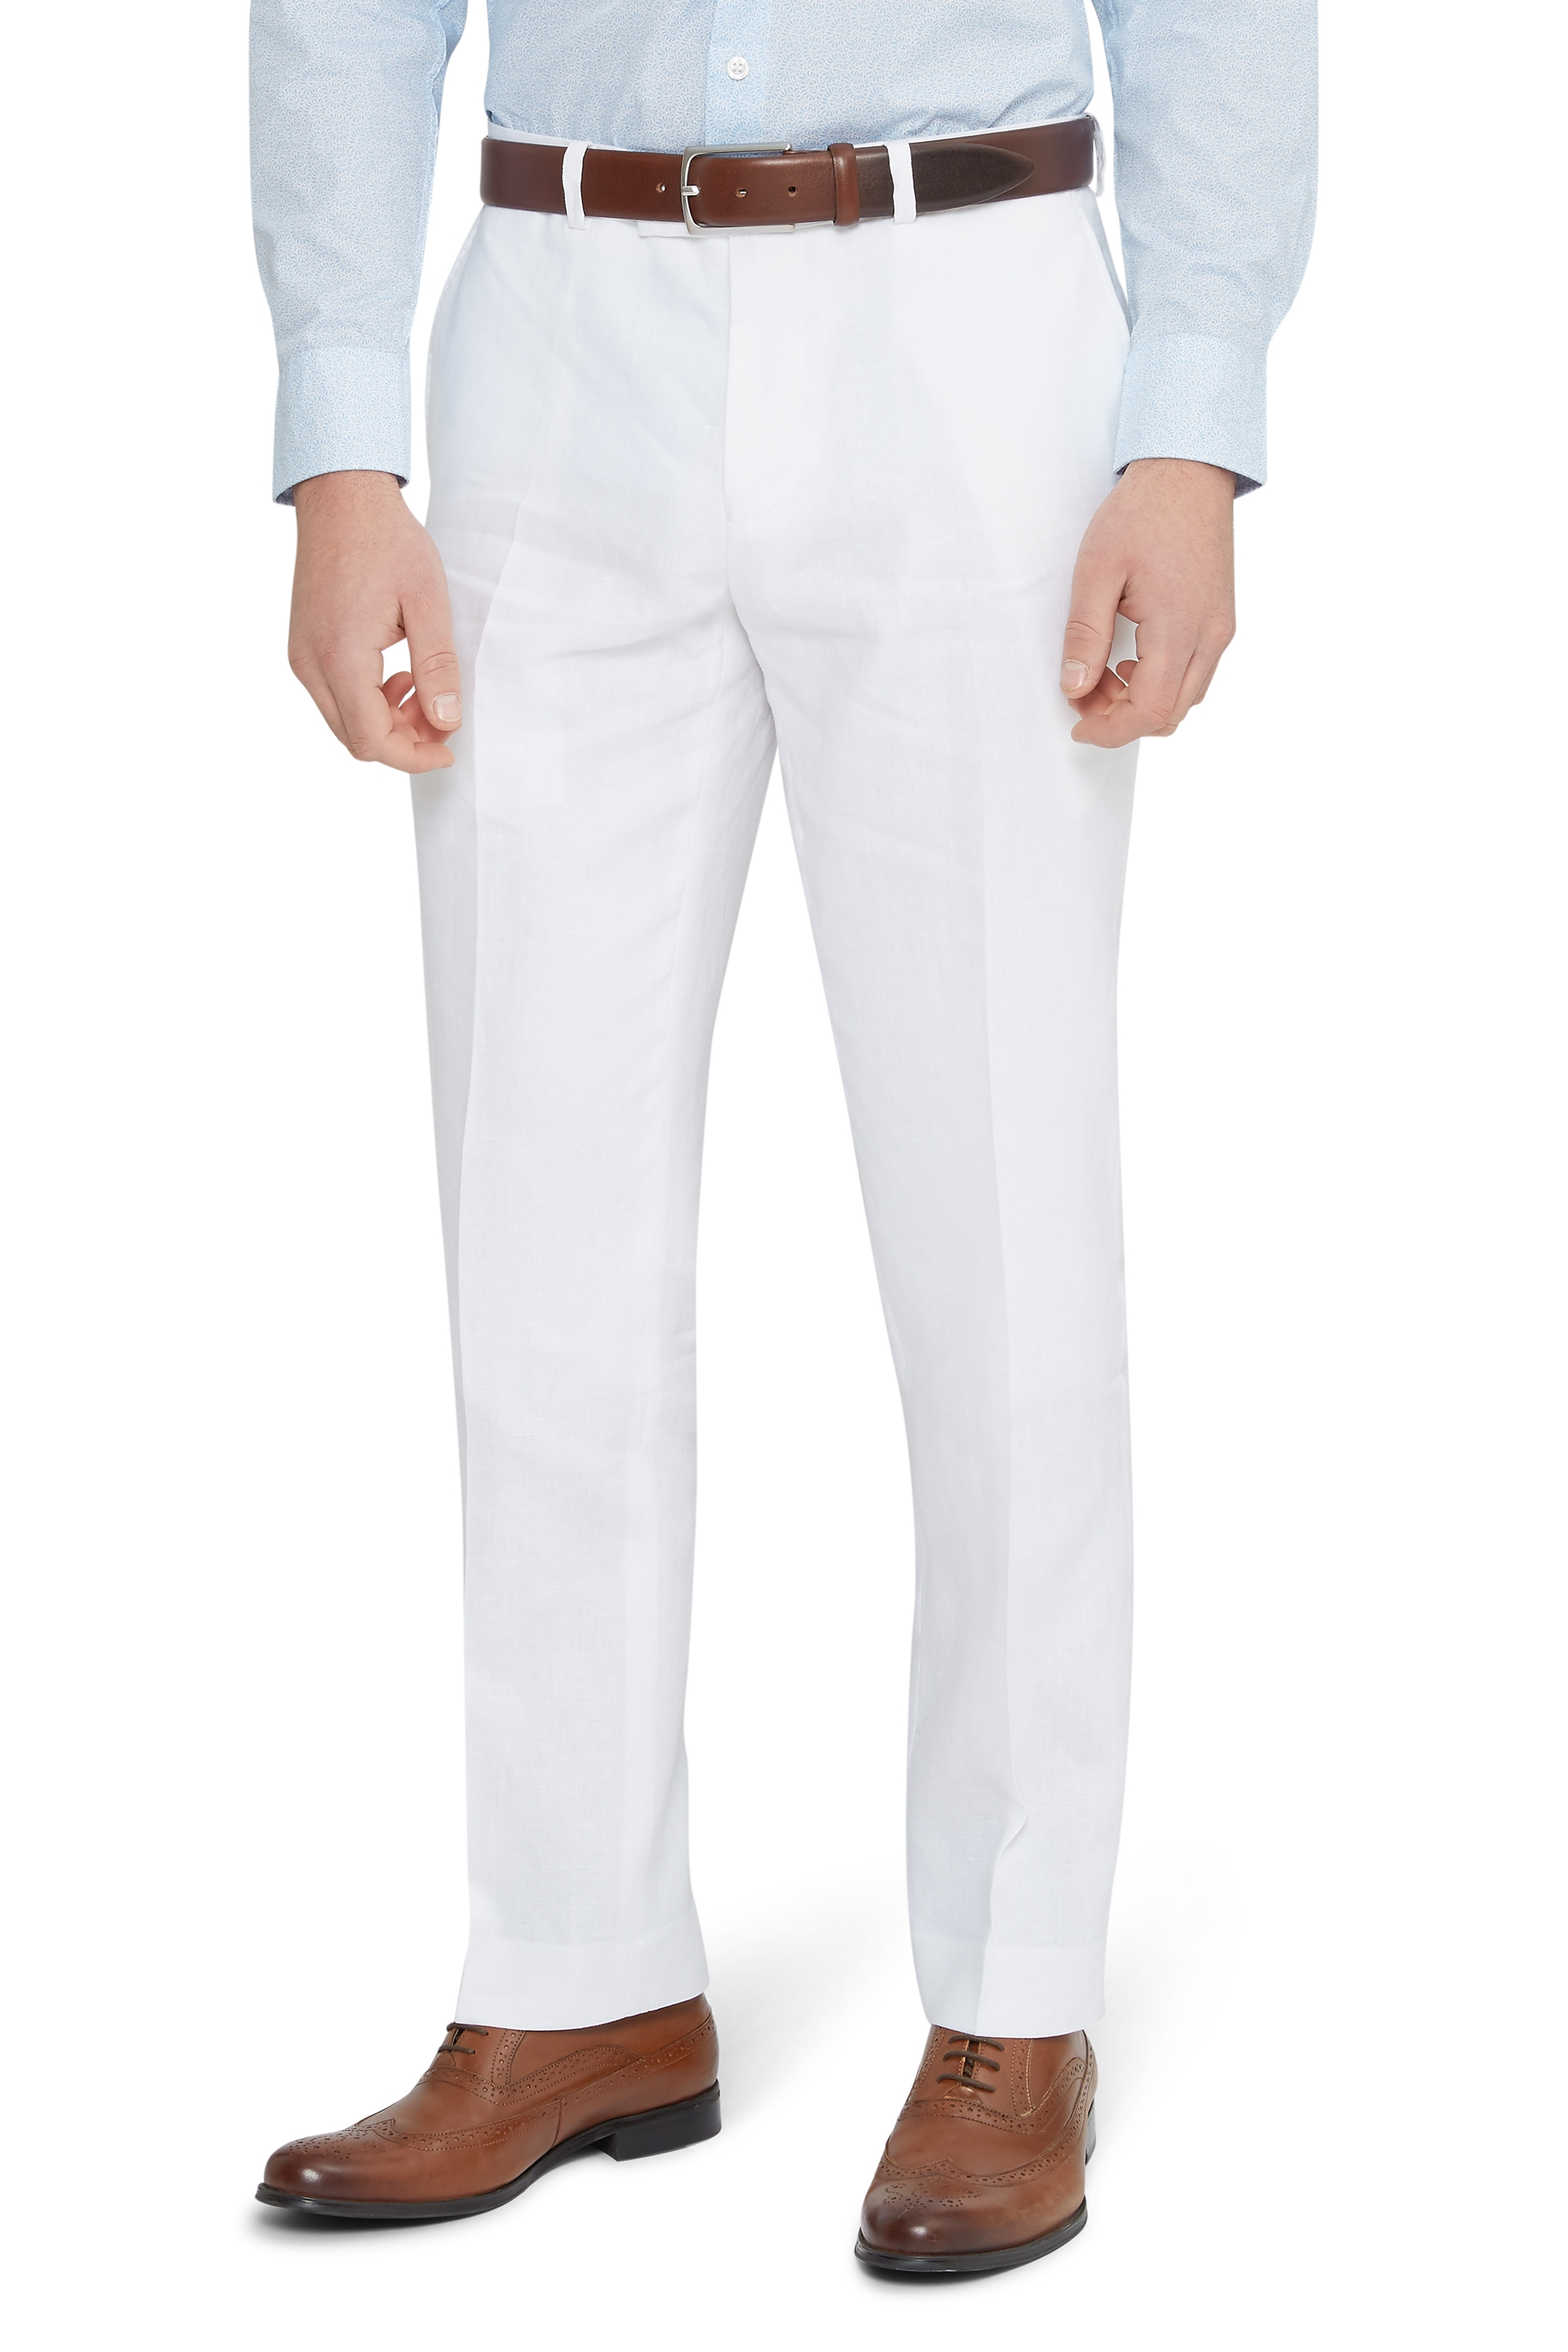 A classic holiday piece to keep you cool and looking smart. These perfectly cut slim trousers have a relaxed and casual island feel, the perfect accompaniment to our linen shirts.